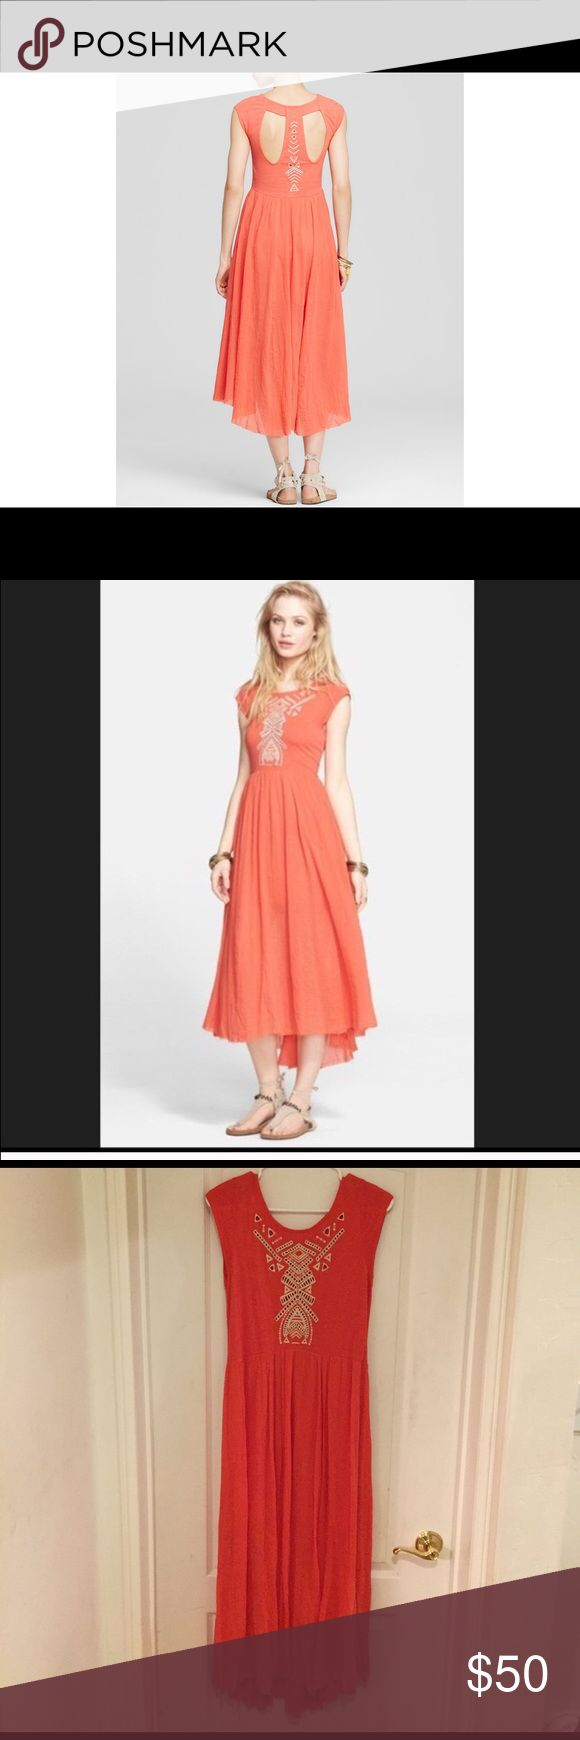 Free People Tangerine Flowy Summer Dress Beautiful, flowy summer dress with gorgeous back design. Perfect for Coachella, summer brunch or really chic farmers market outfit. RUNS BIG, more like a medium. Free People Dresses Midi